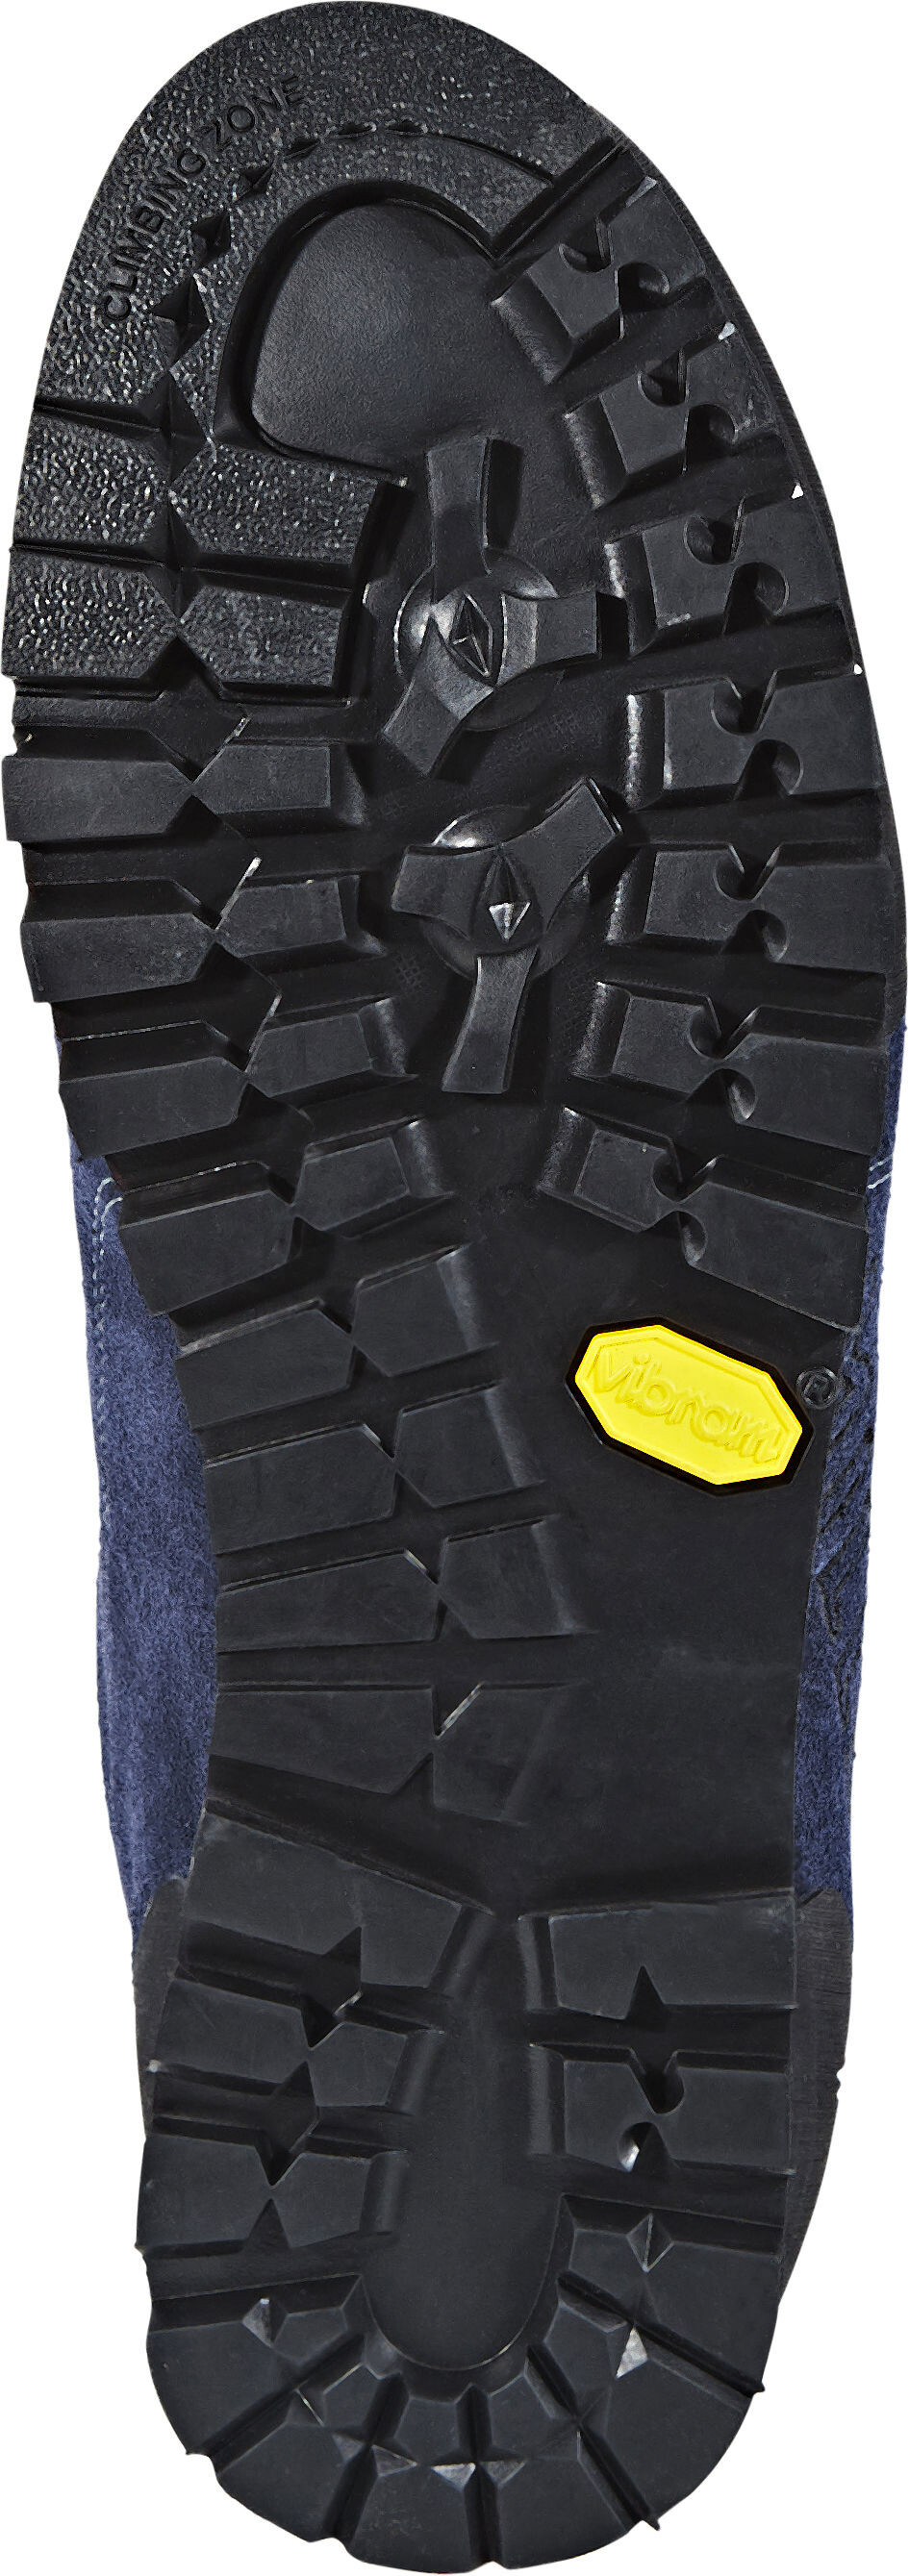 Friction Shoes For Climbing Size